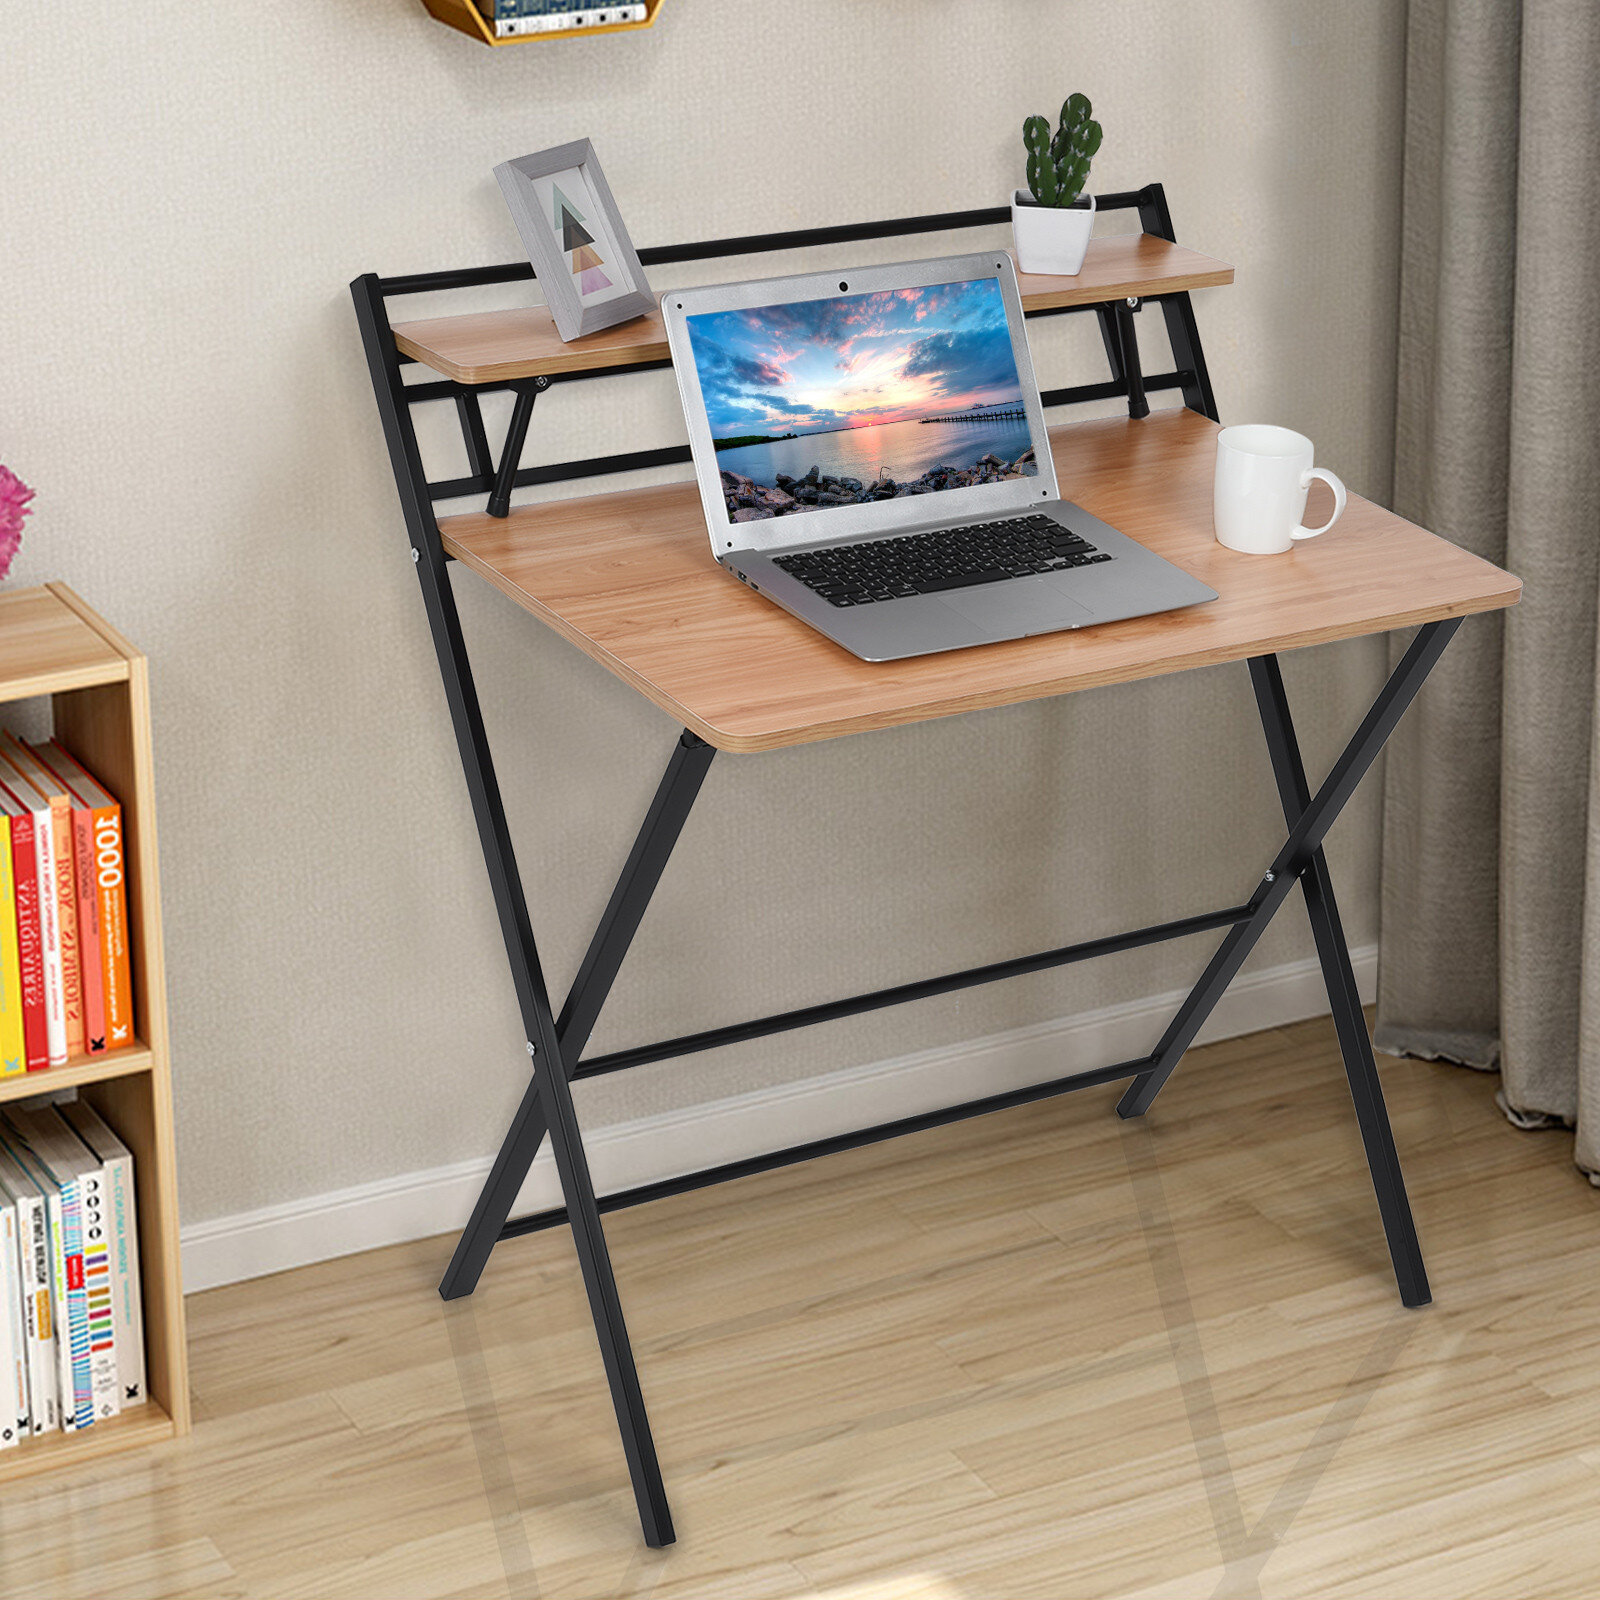 Details about  /Folding Study Desk For Small Space Home Office Desk Simple Laptop Writing Table